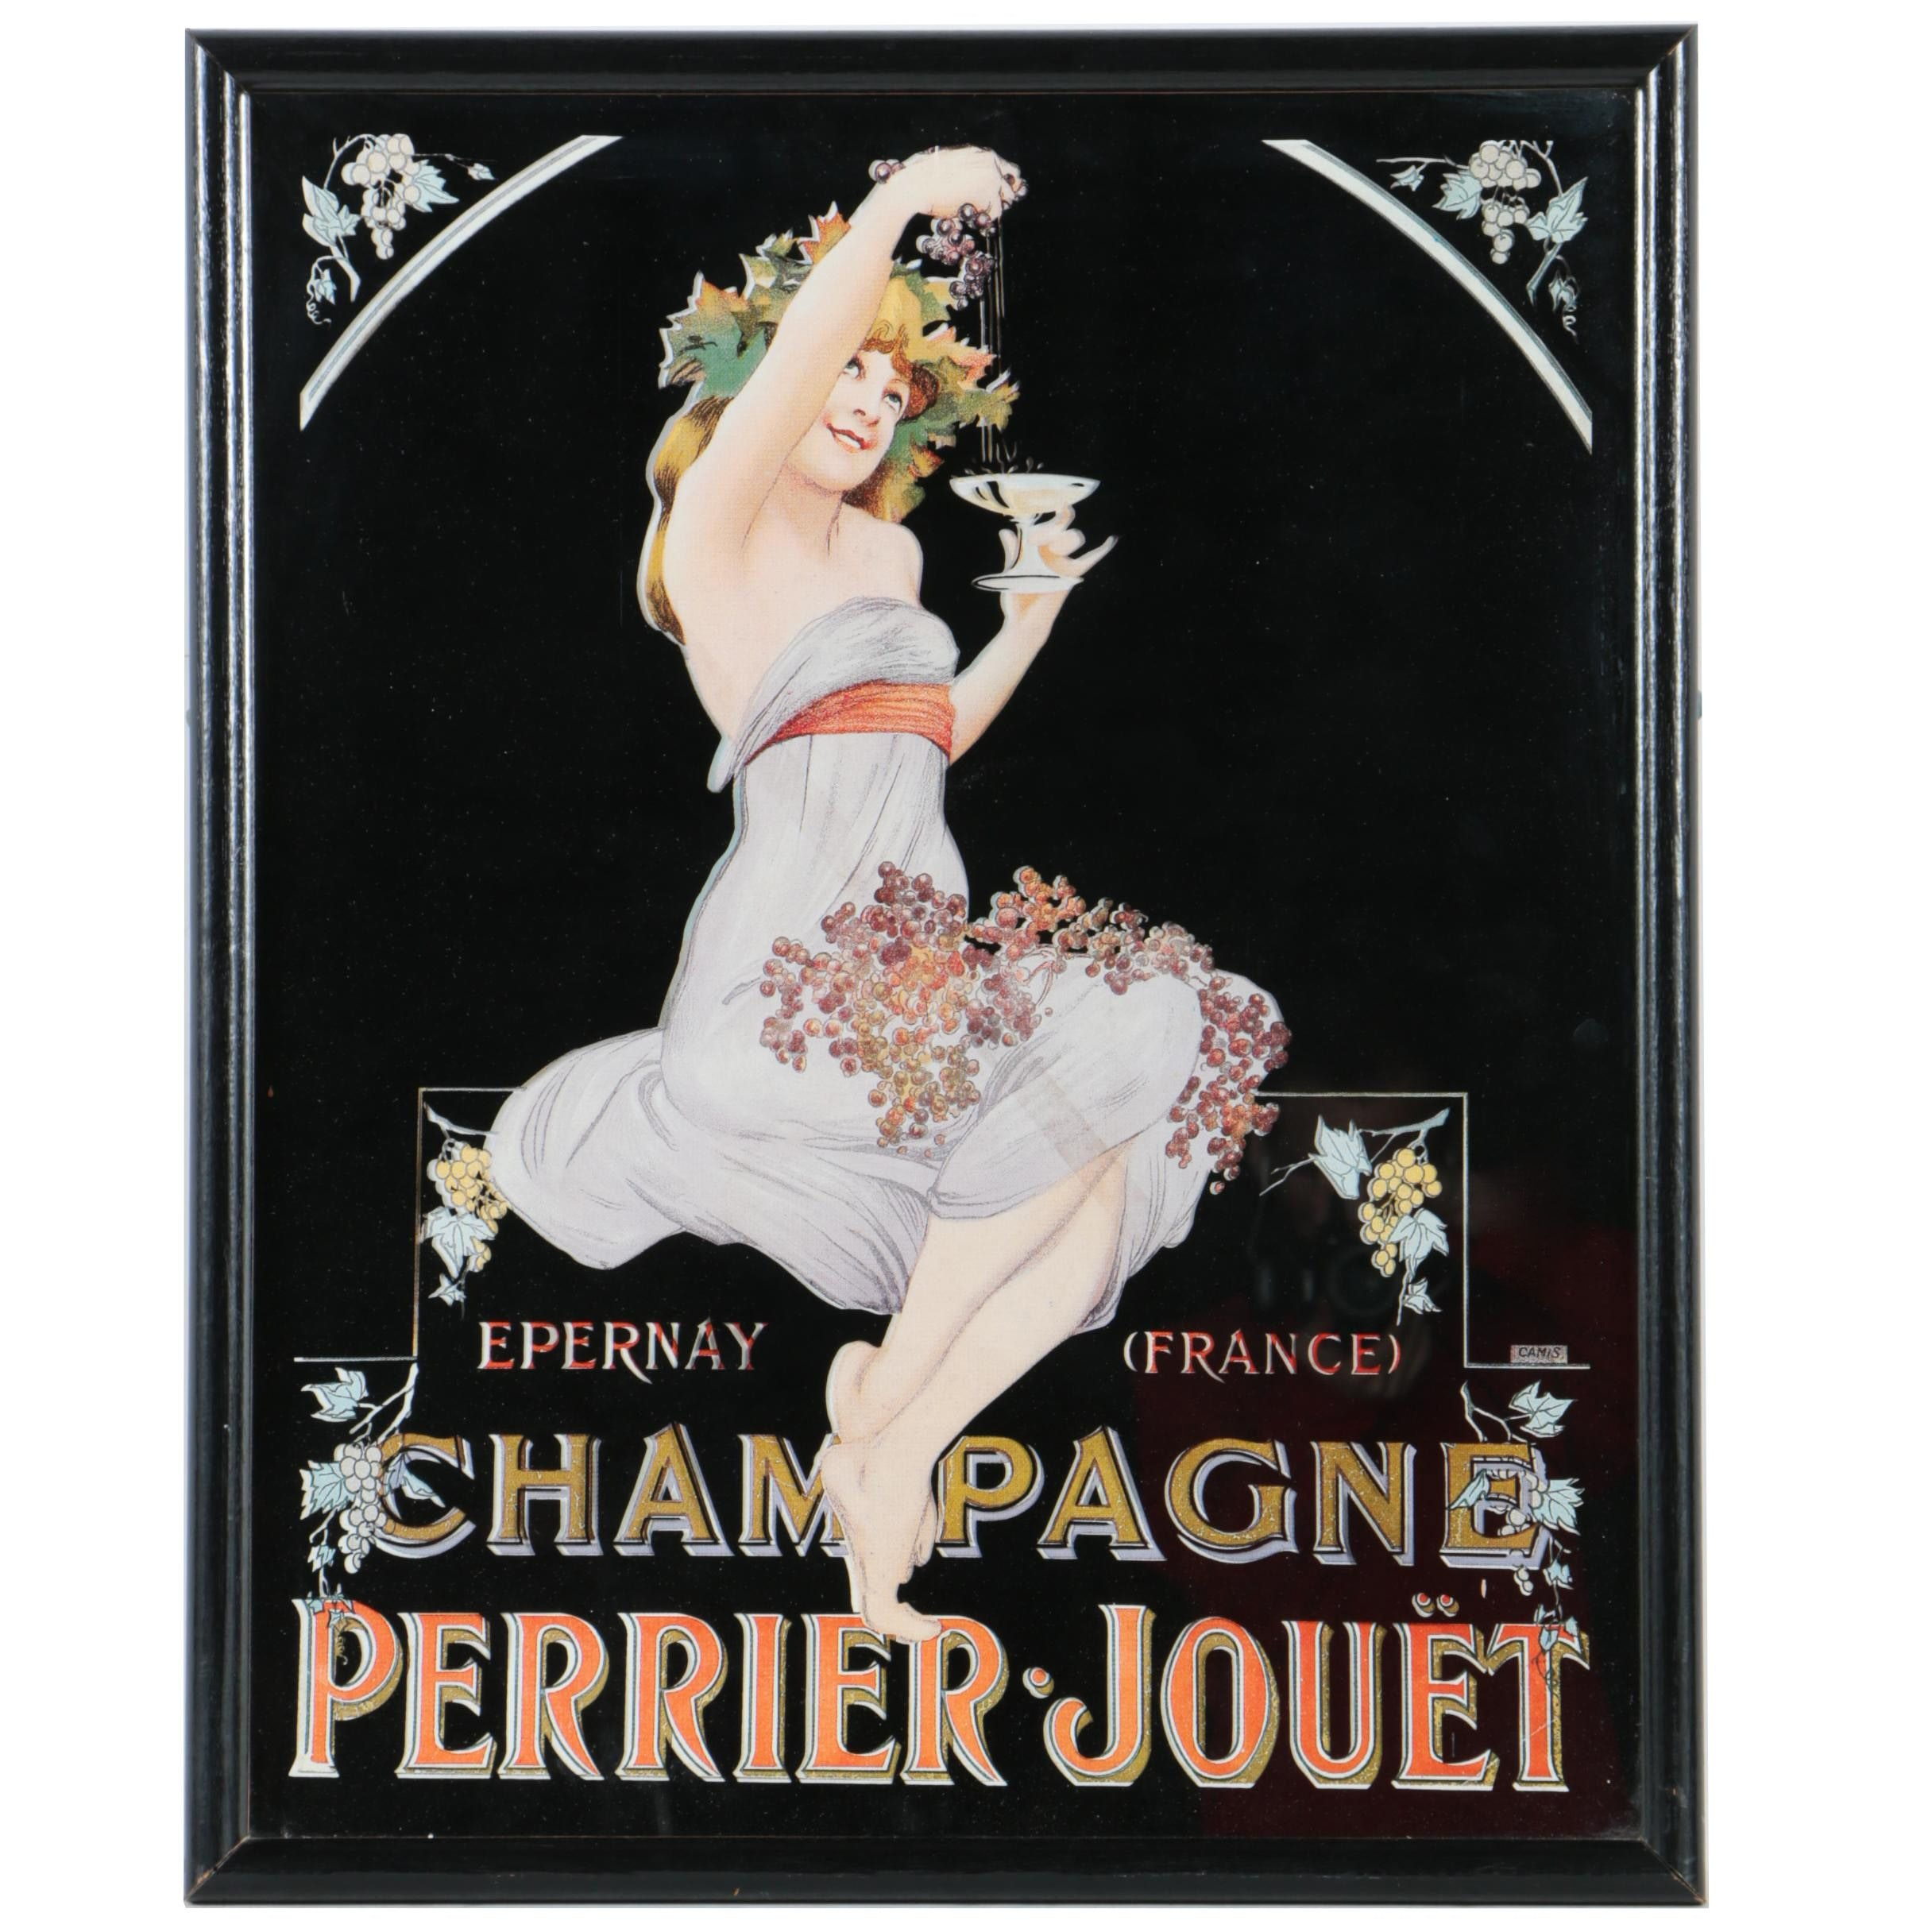 Art Nouveau Style Lithograph on Mirror Featuring Perrier Jouët